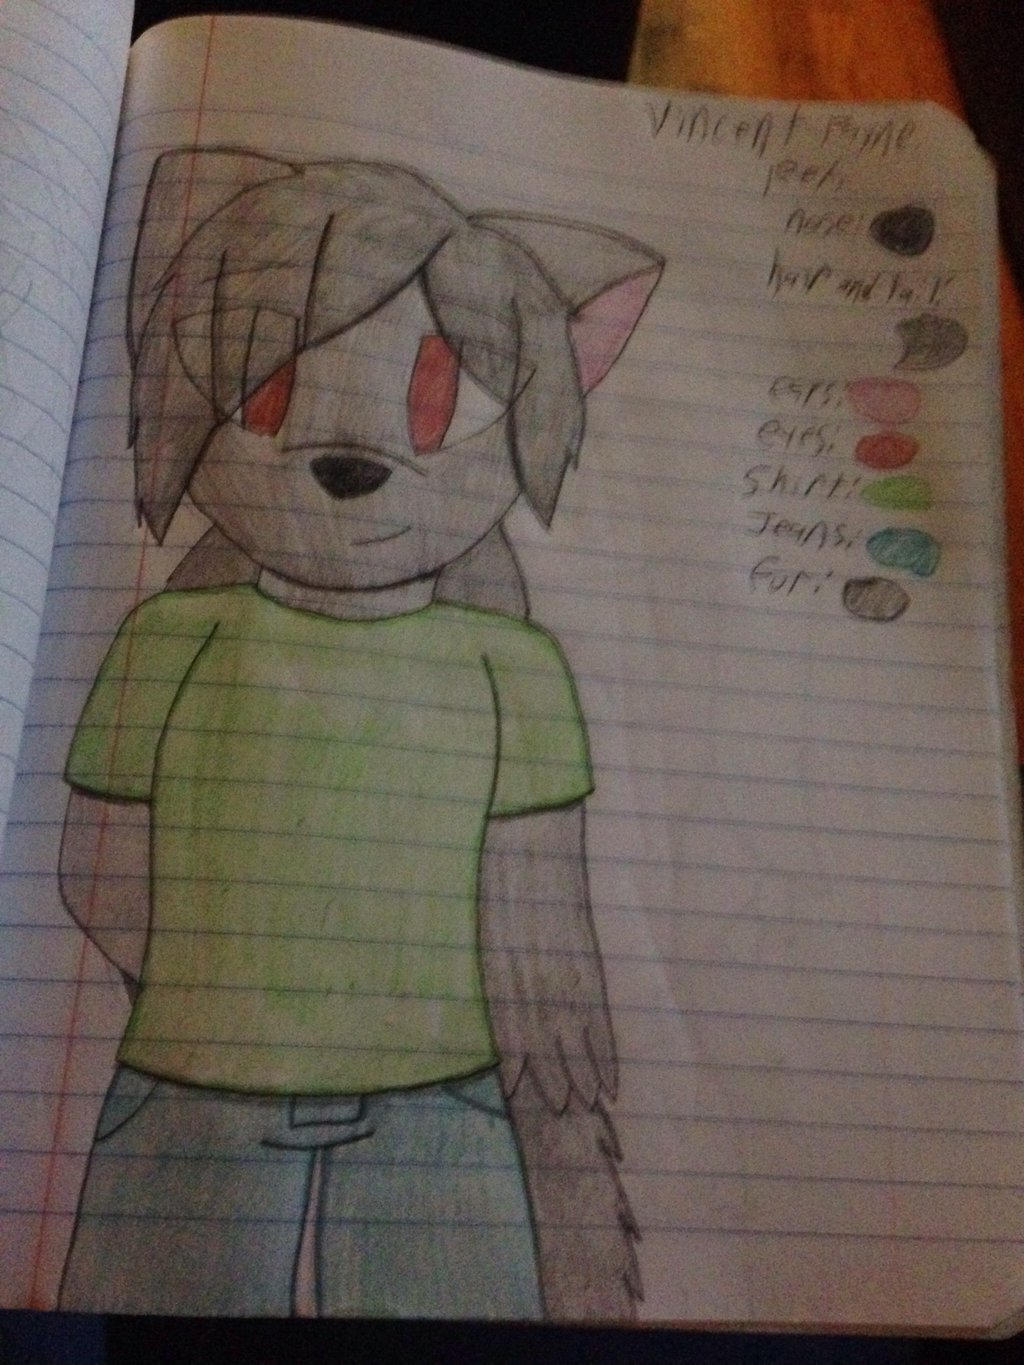 Vincent Payne Ref  by ShadAmyfangirl129